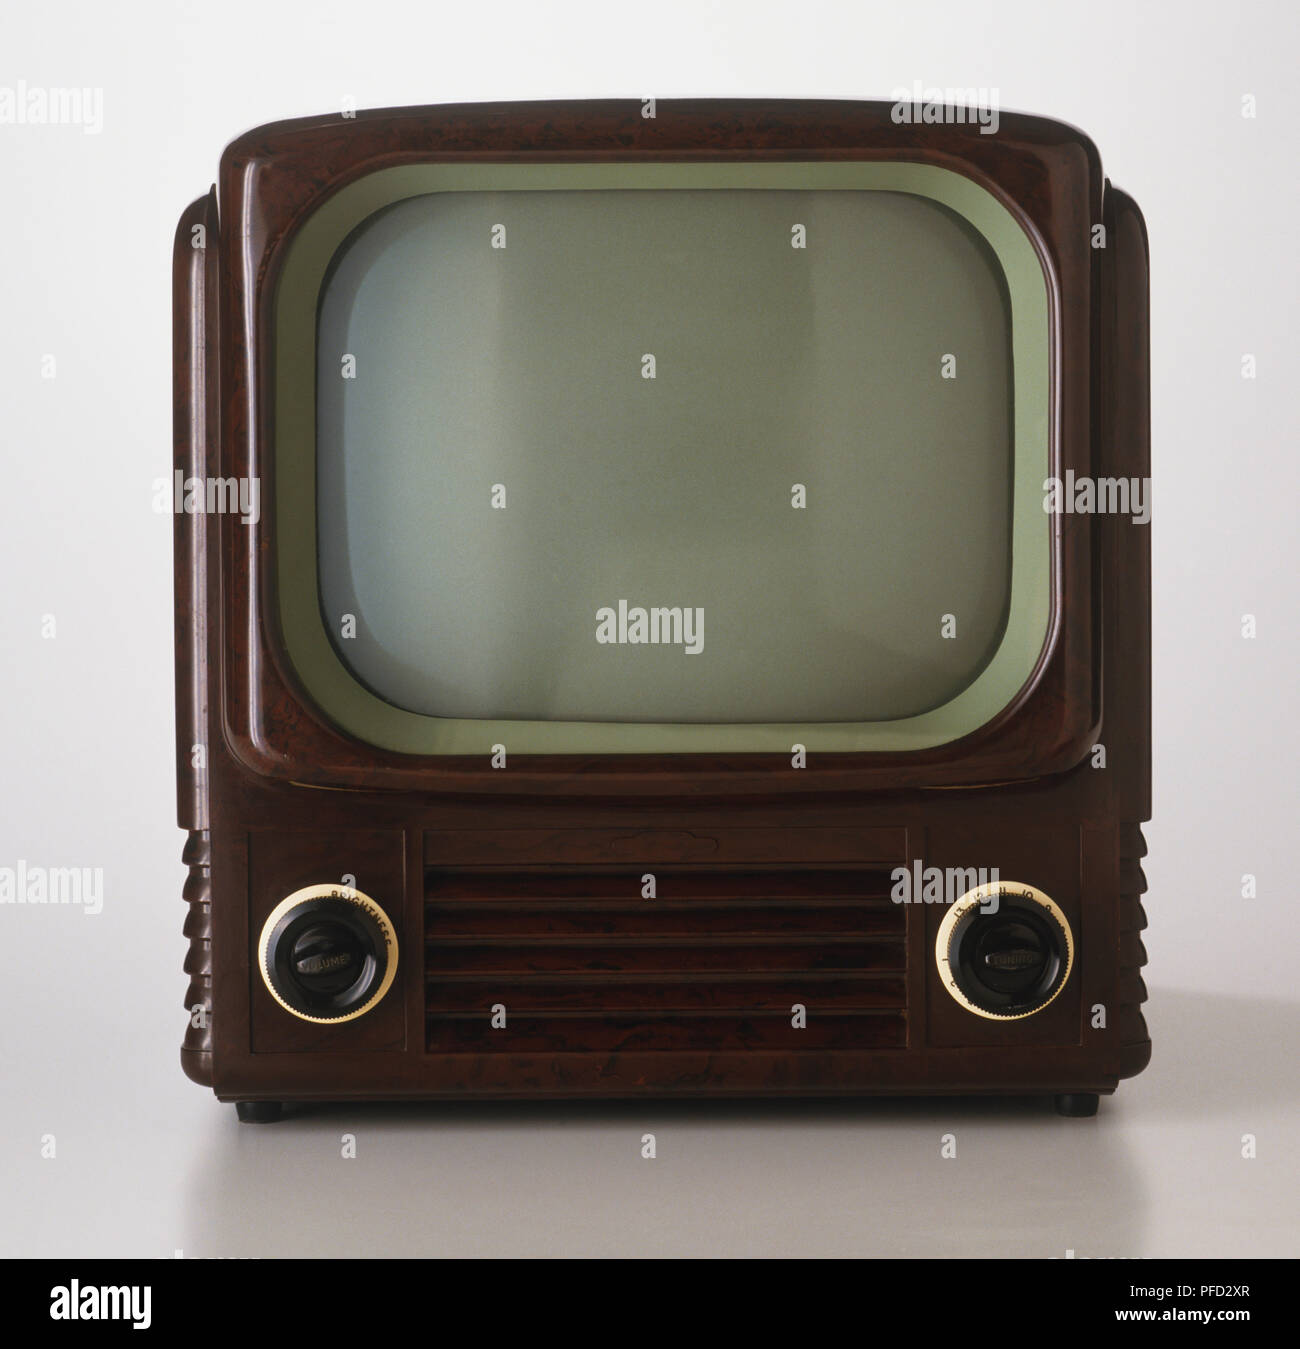 1950s tv set - Stock Image